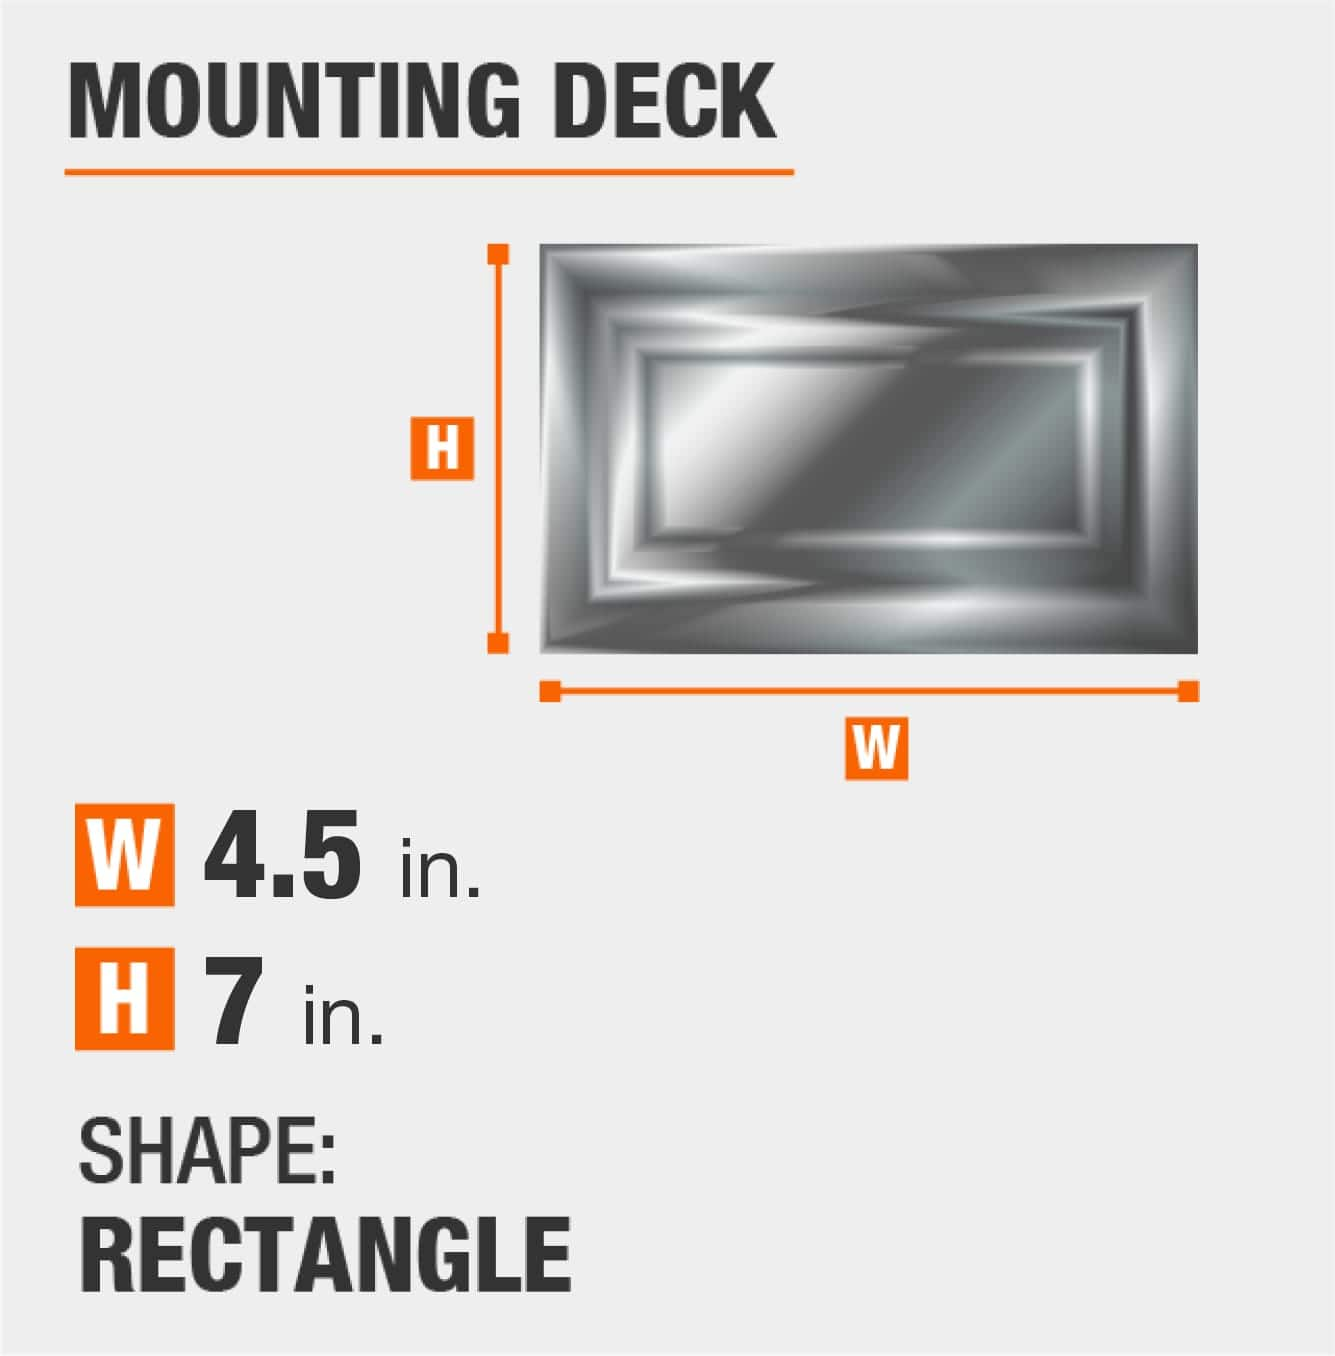 mounting deck is rectangular and 7 inches by 4.5 inches